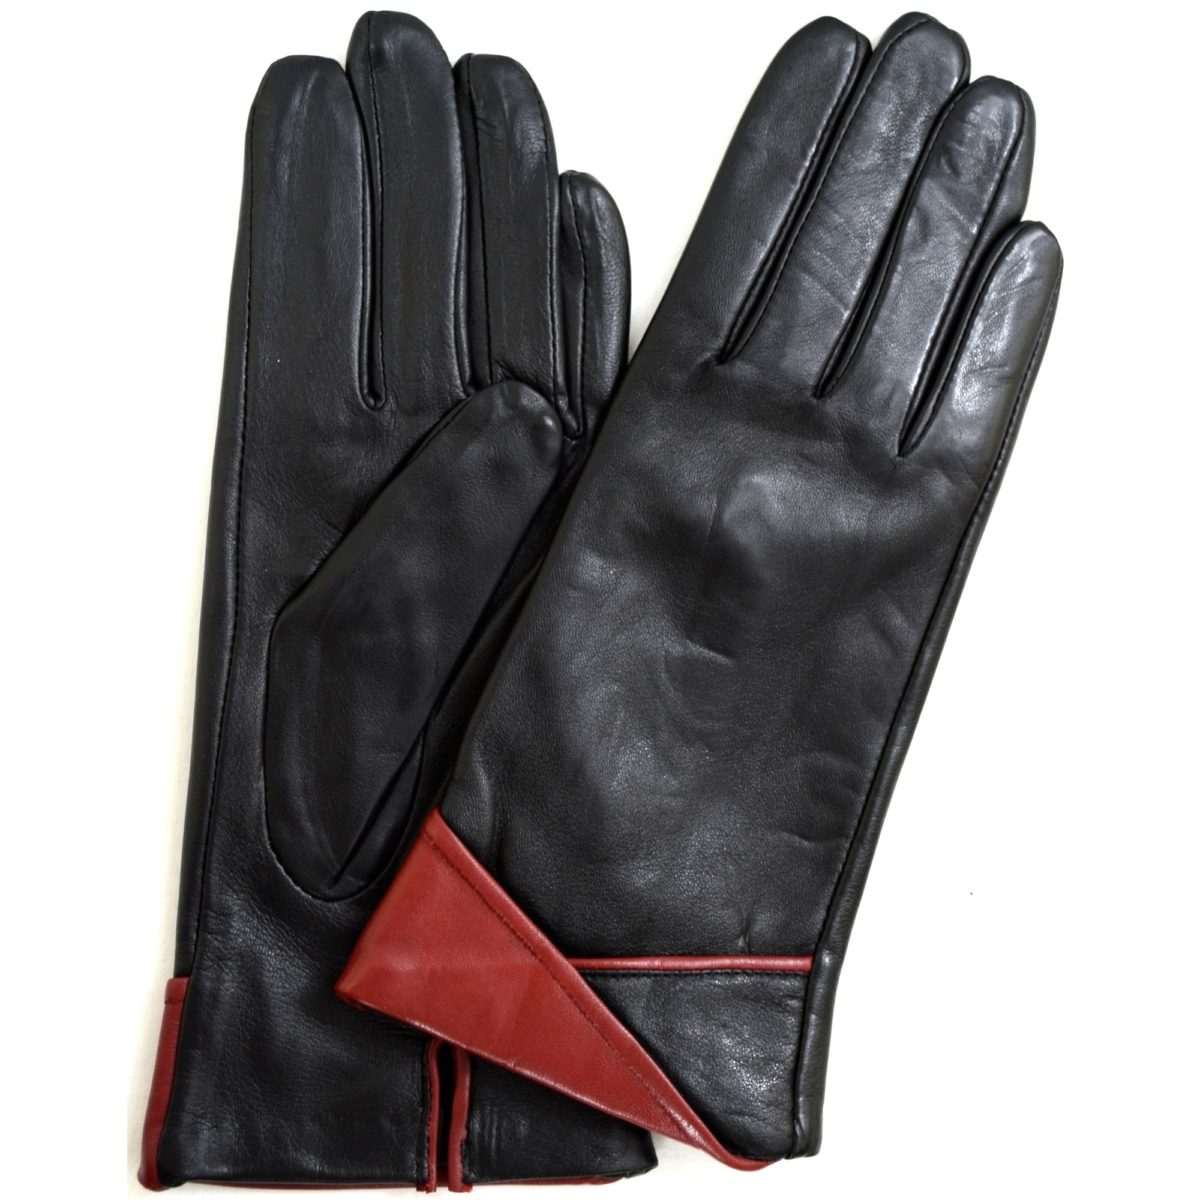 Alis- Leather Glove with Folded Cuff Design - Red